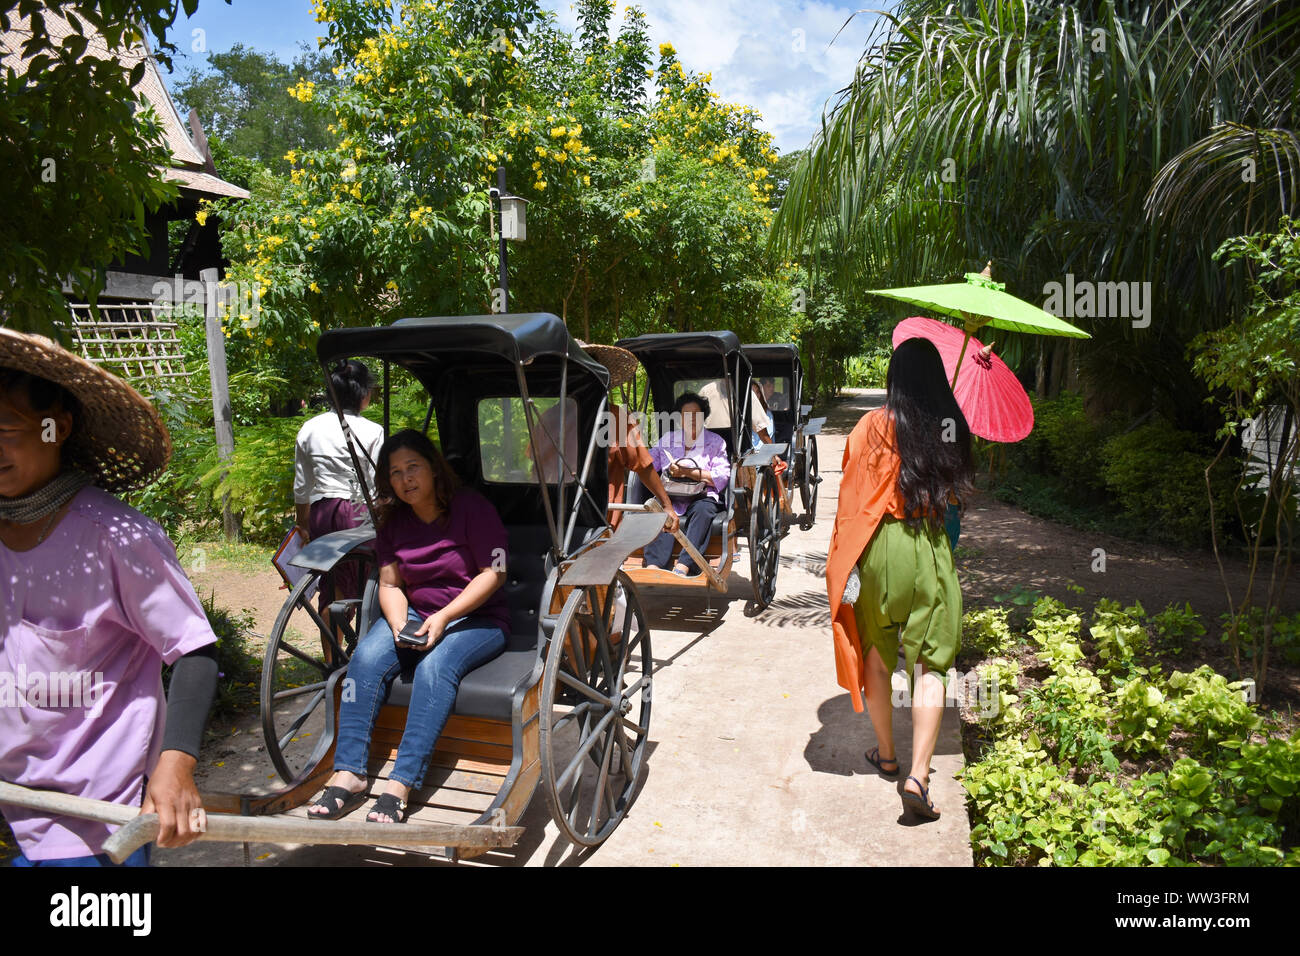 """Kanchanaburi, Thailand, 09.09.2019: Locals are transporting tourists/guest in traditional Rickshaws in """"Mallika City R.E. 124"""", the heritage, retro-ci Stock Photo"""